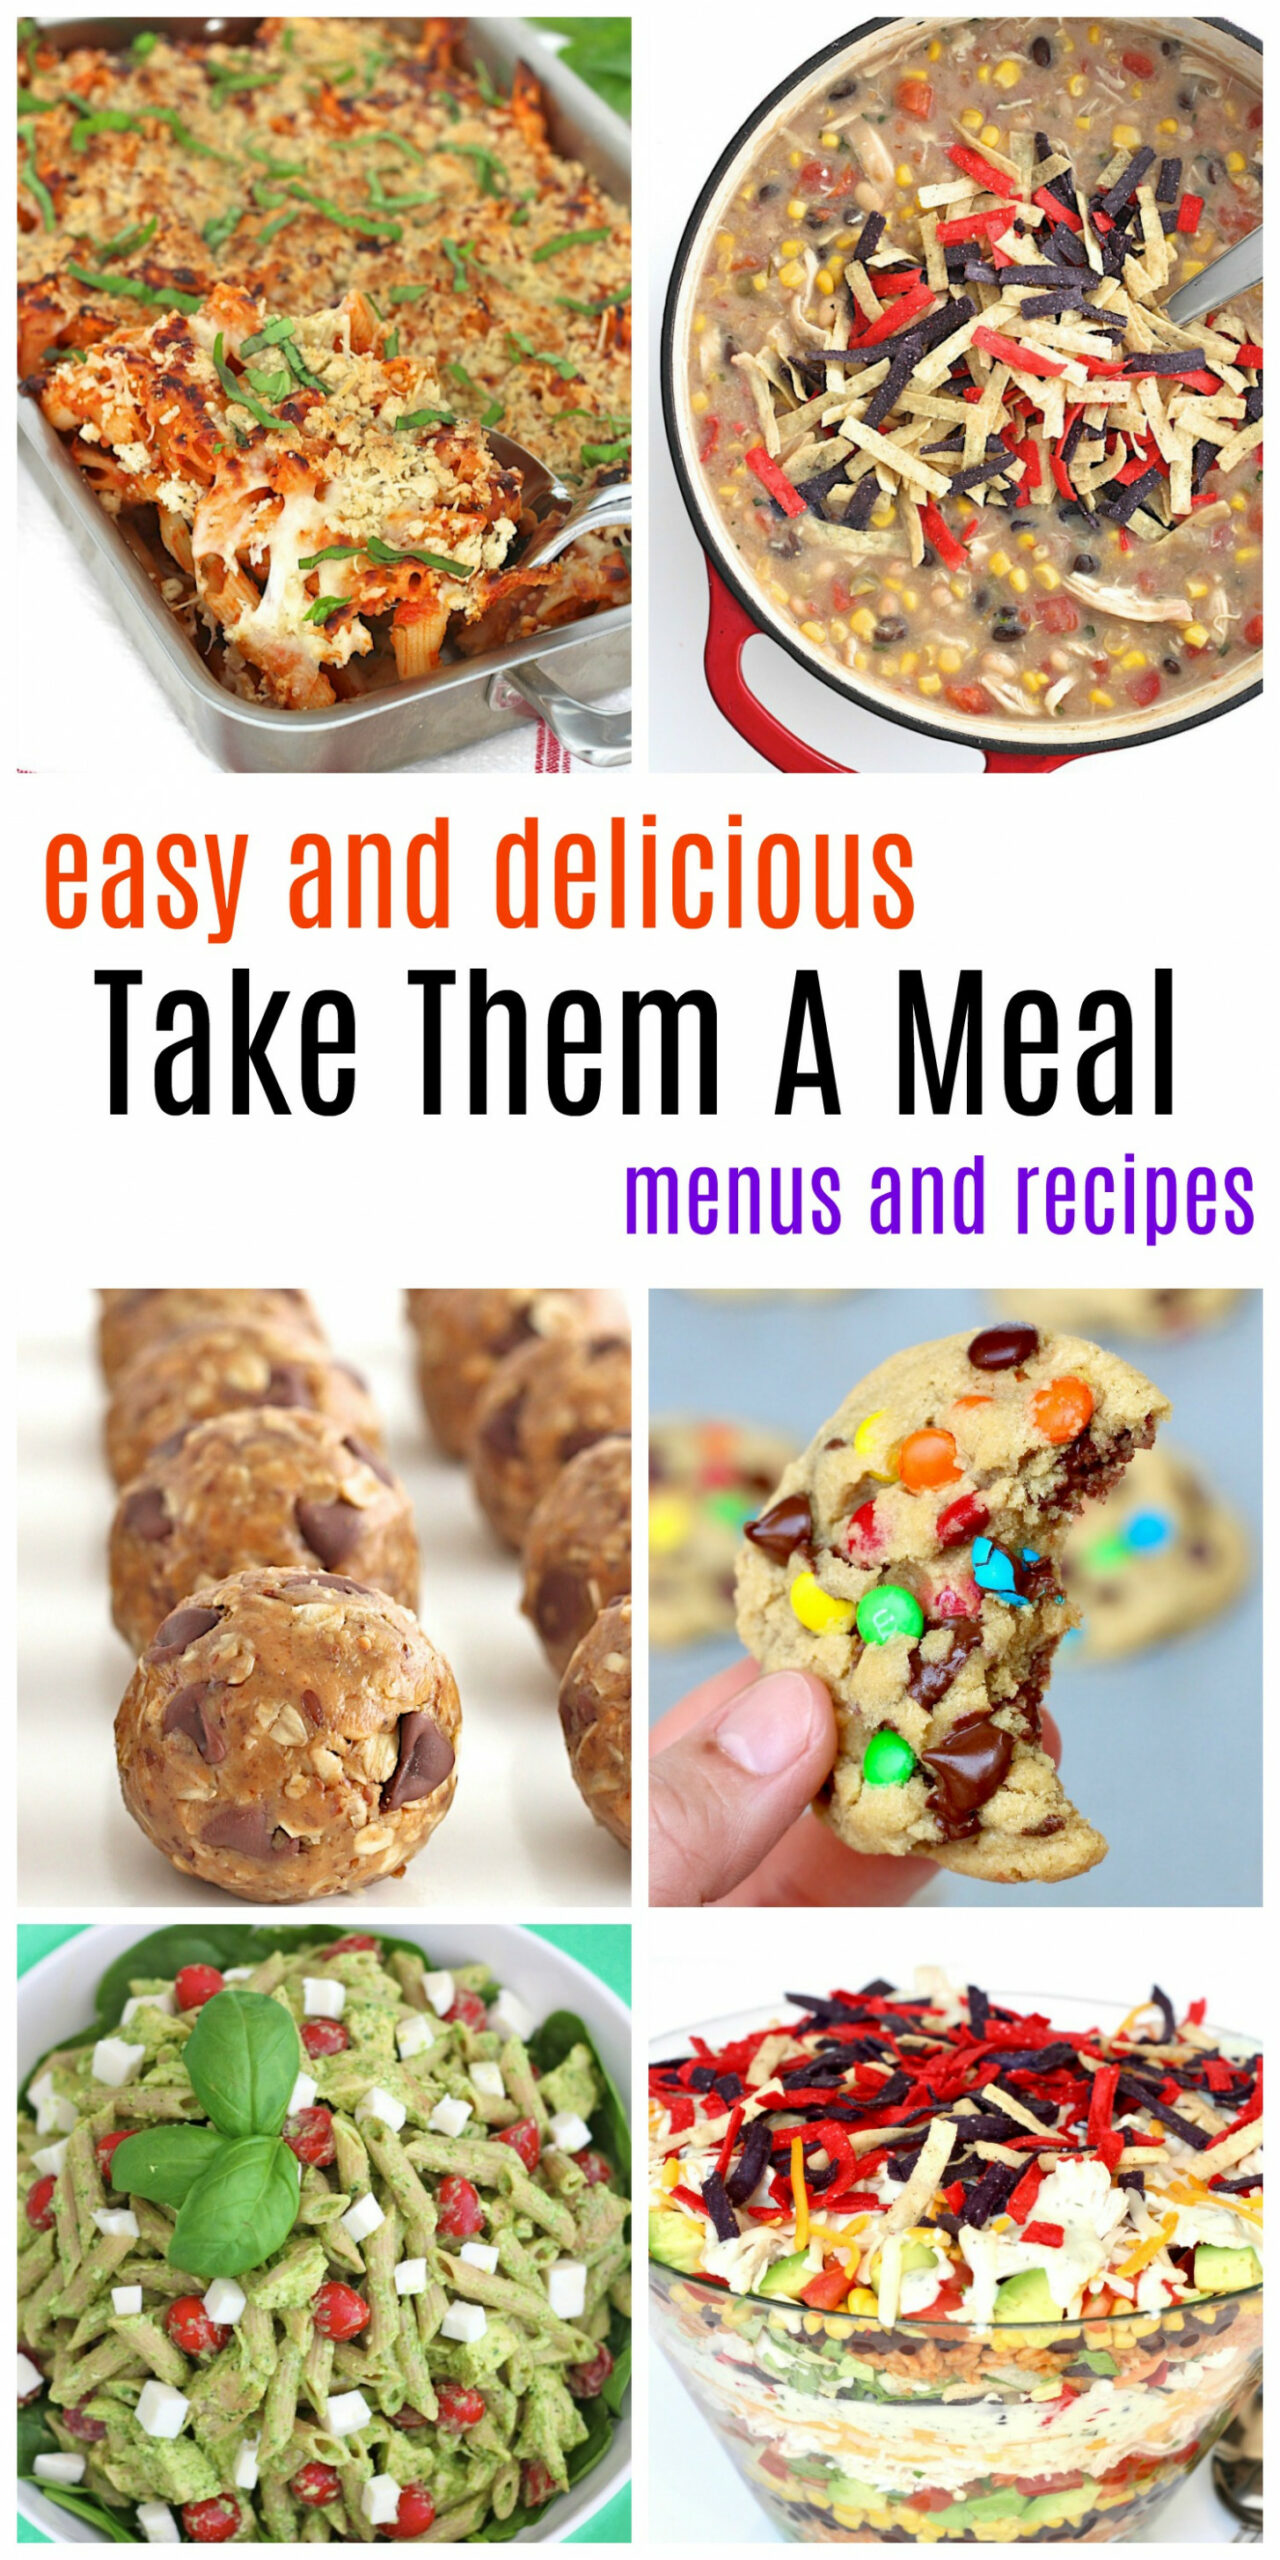 Take Them A Meal | The BakerMama - recipes dinner with friends